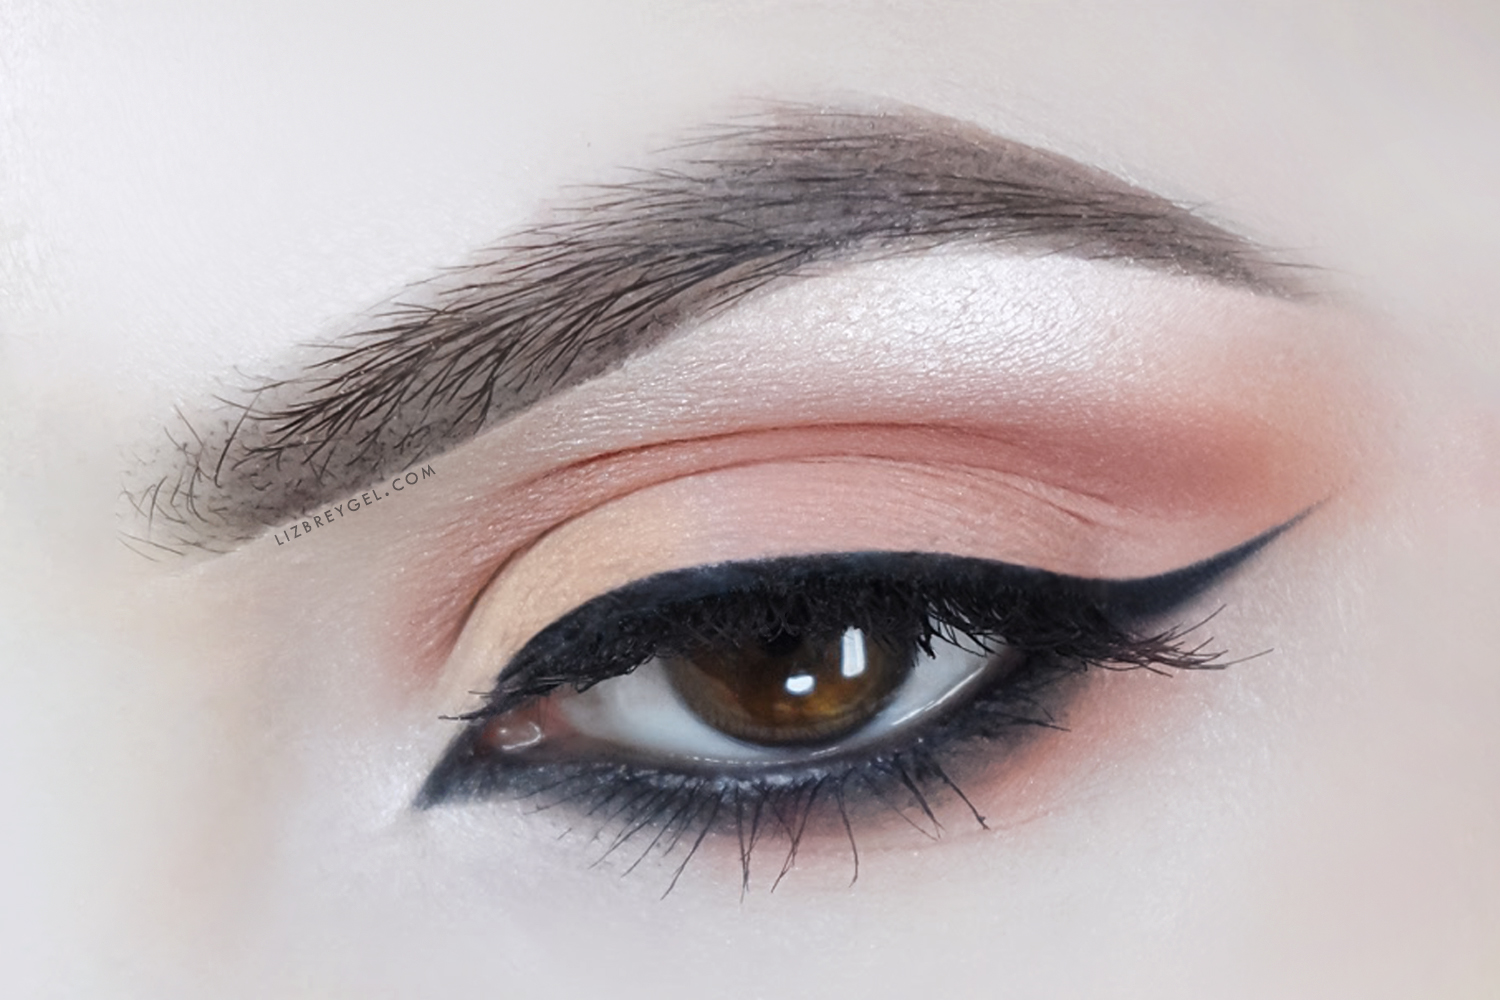 a close up picture of an eye with a soft makeup look